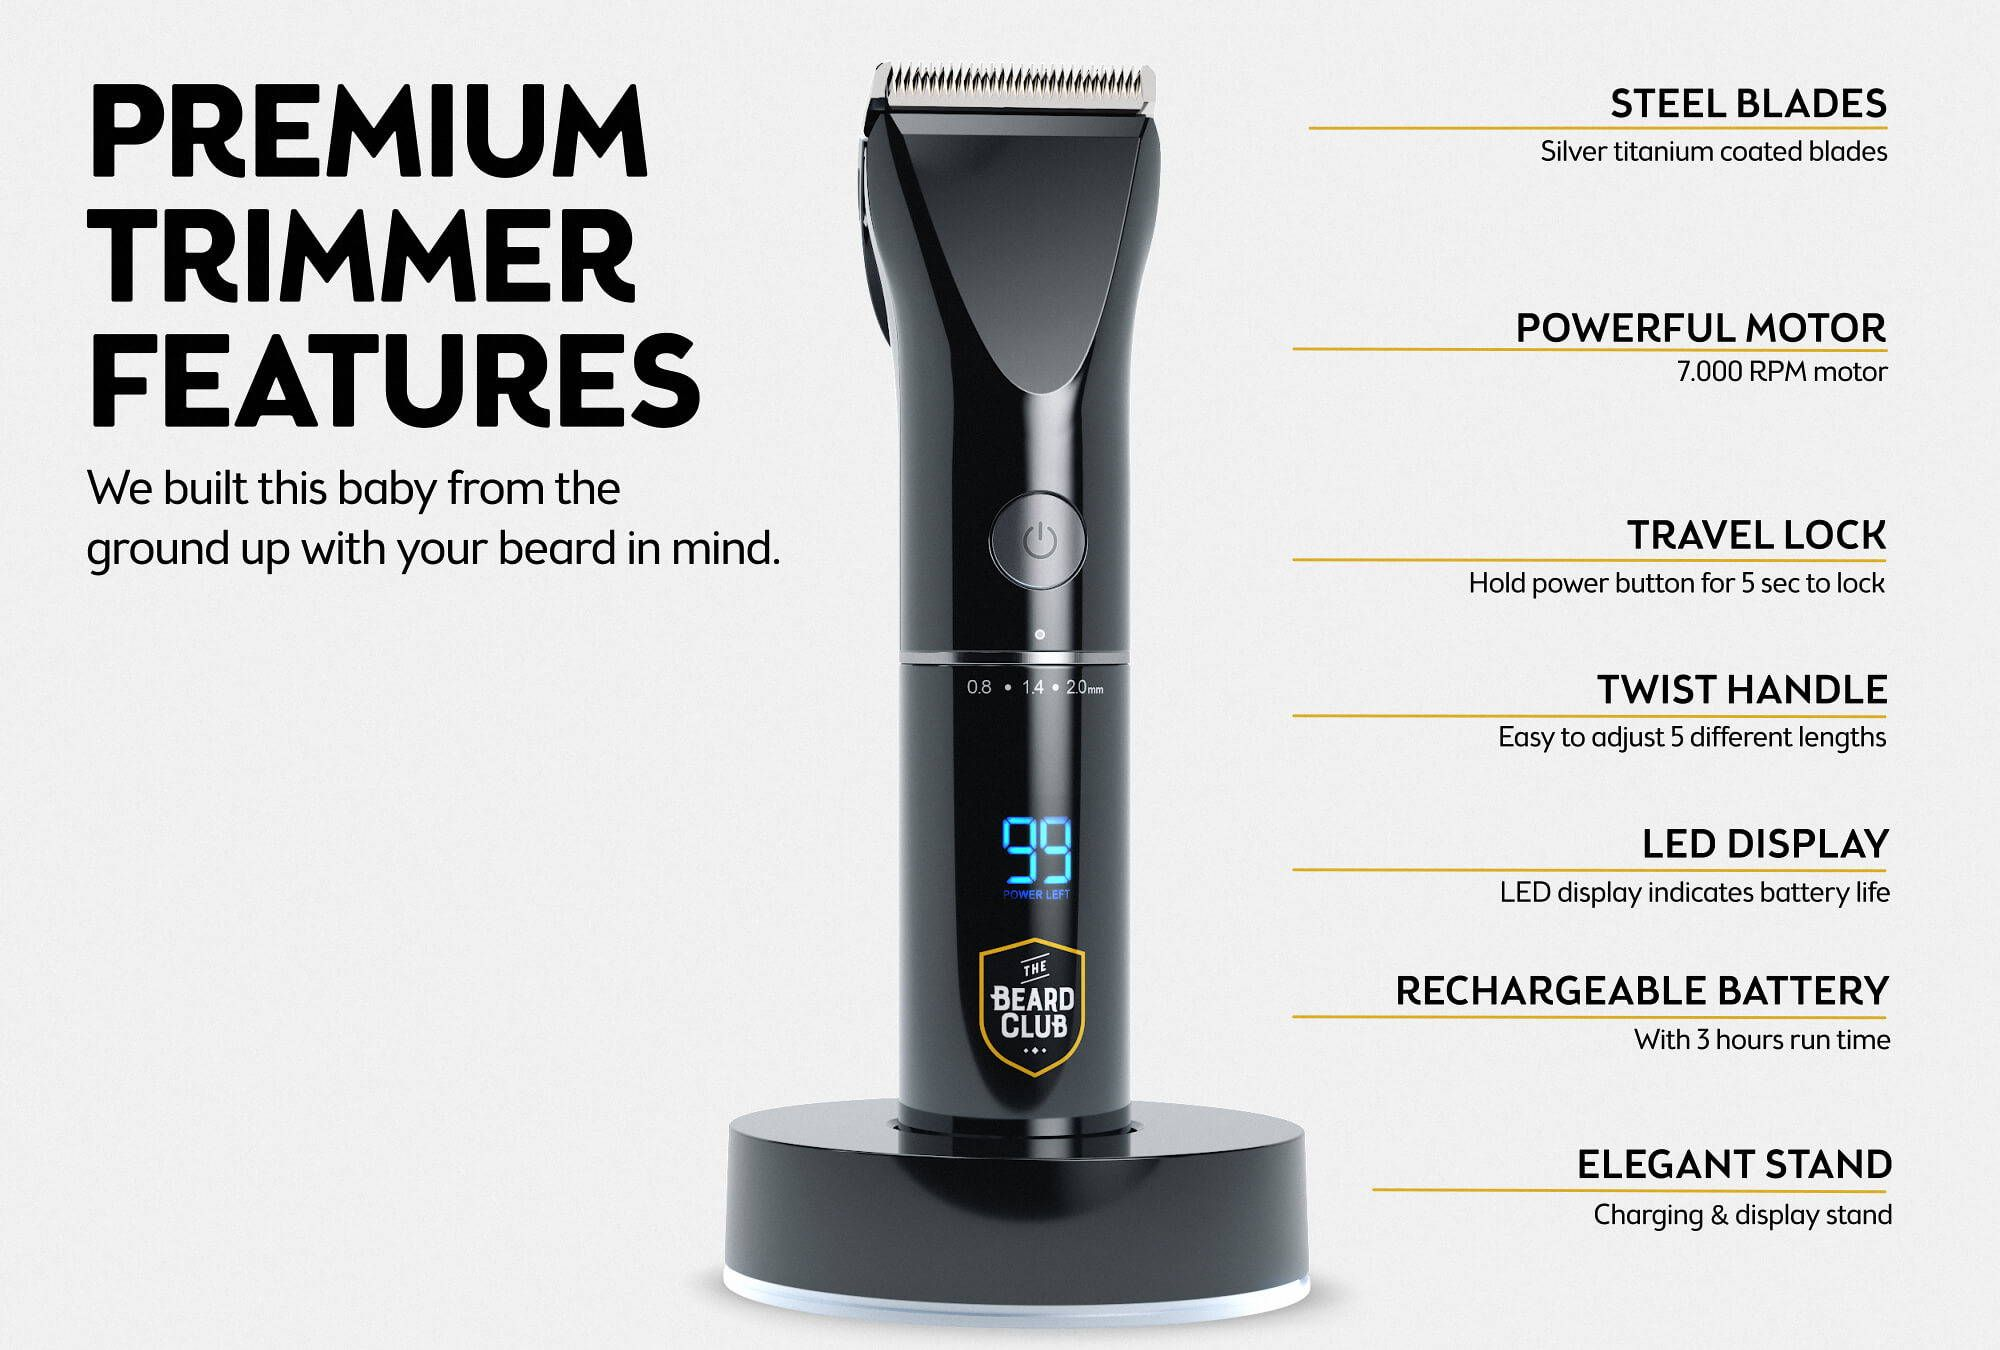 PT45 Beard and Hair Trimmer – The Beard Club